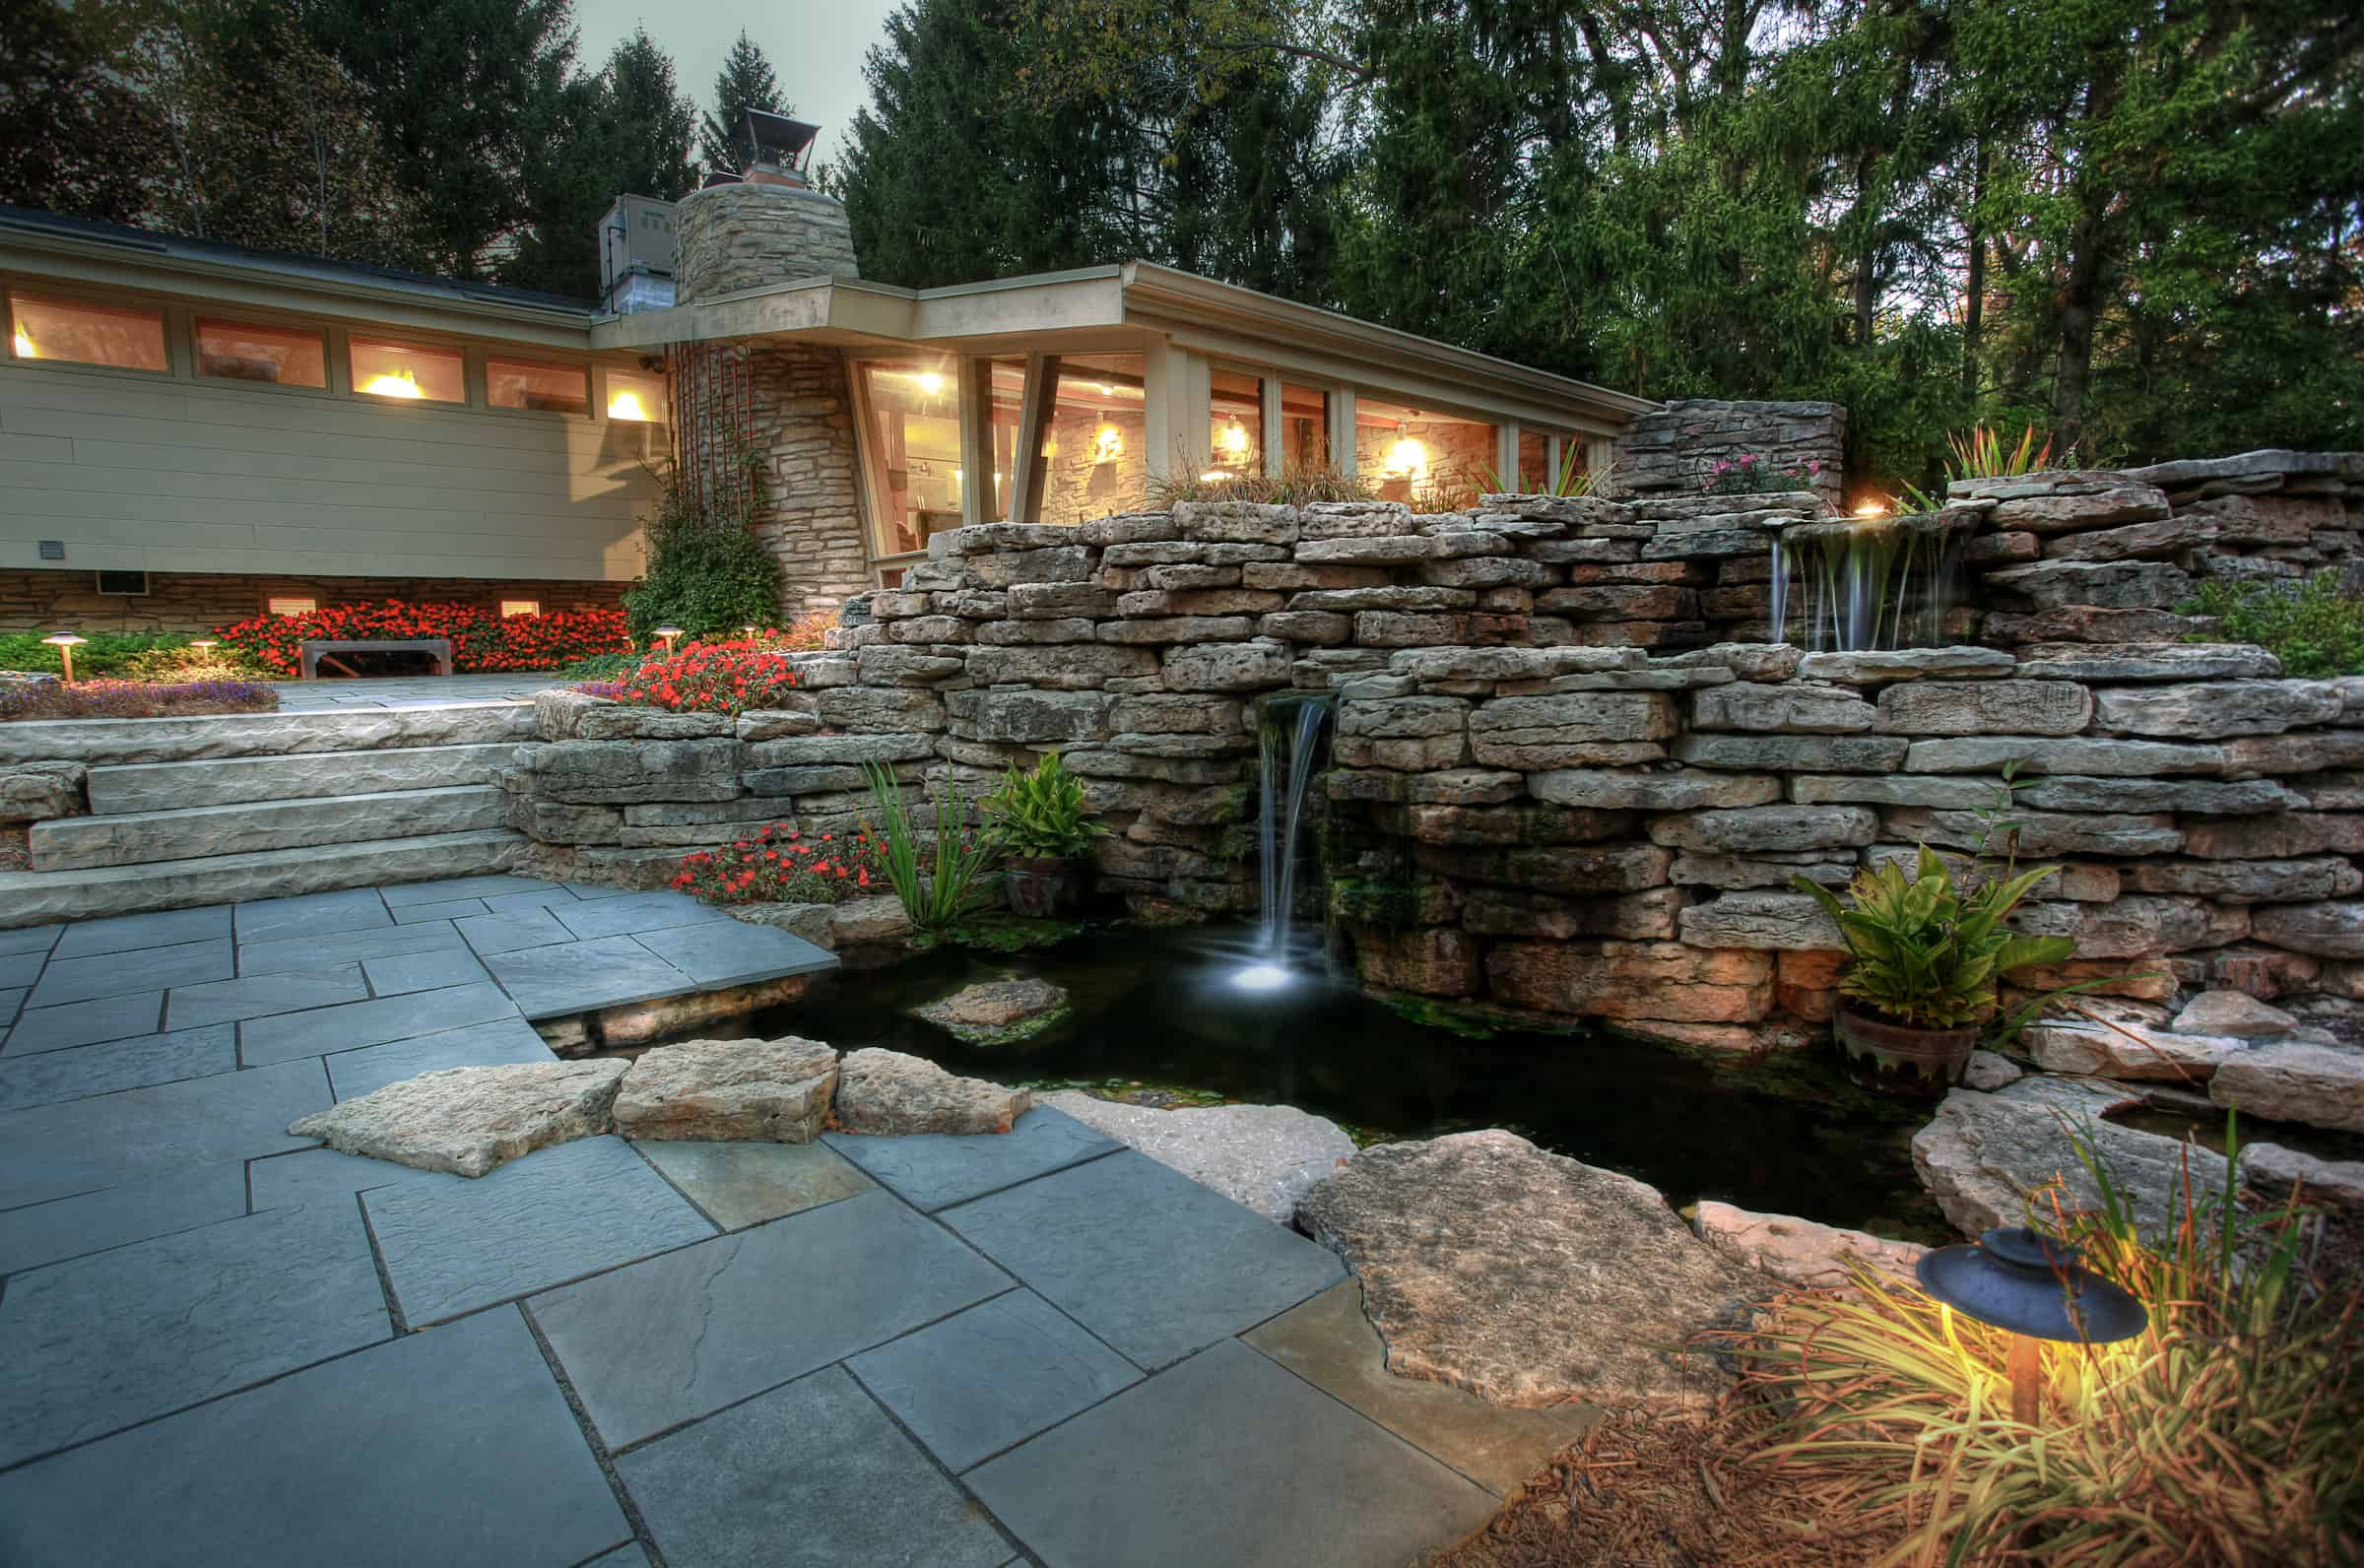 35 Sublime Koi Pond Designs and Water Garden Ideas for ... on Koi Ponds Ideas  id=78605